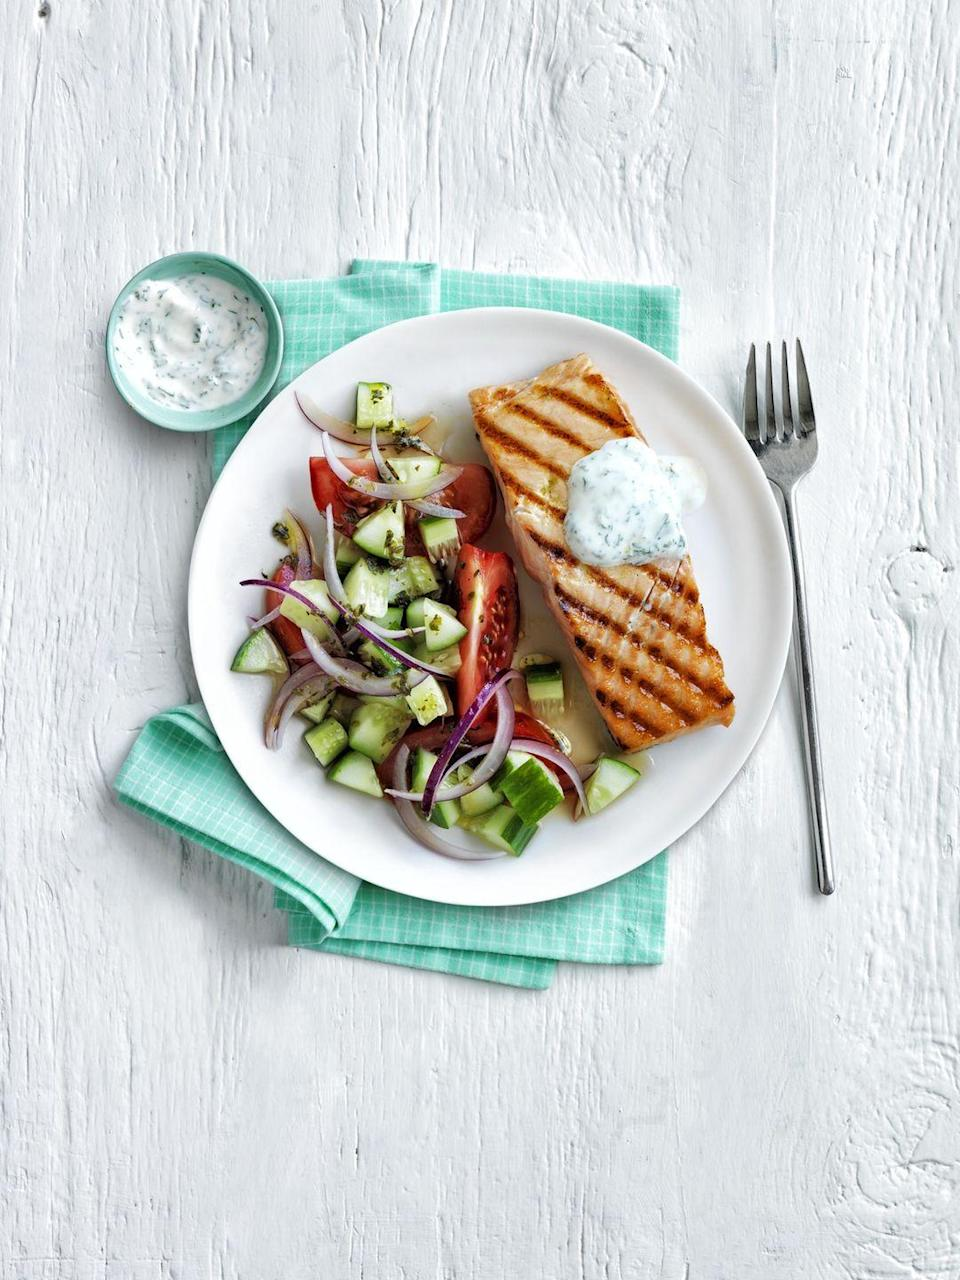 """<p>Grilled salmon pairs perfectly with an herby salad and lemony tzatziki.</p><p><em><a href=""""https://www.womansday.com/food-recipes/food-drinks/recipes/a54835/grilled-salmon-with-greek-salad-recipe/"""" rel=""""nofollow noopener"""" target=""""_blank"""" data-ylk=""""slk:Get the Grilled Salmon with Greek Salad recipe."""" class=""""link rapid-noclick-resp"""">Get the Grilled Salmon with Greek Salad recipe.</a></em></p>"""